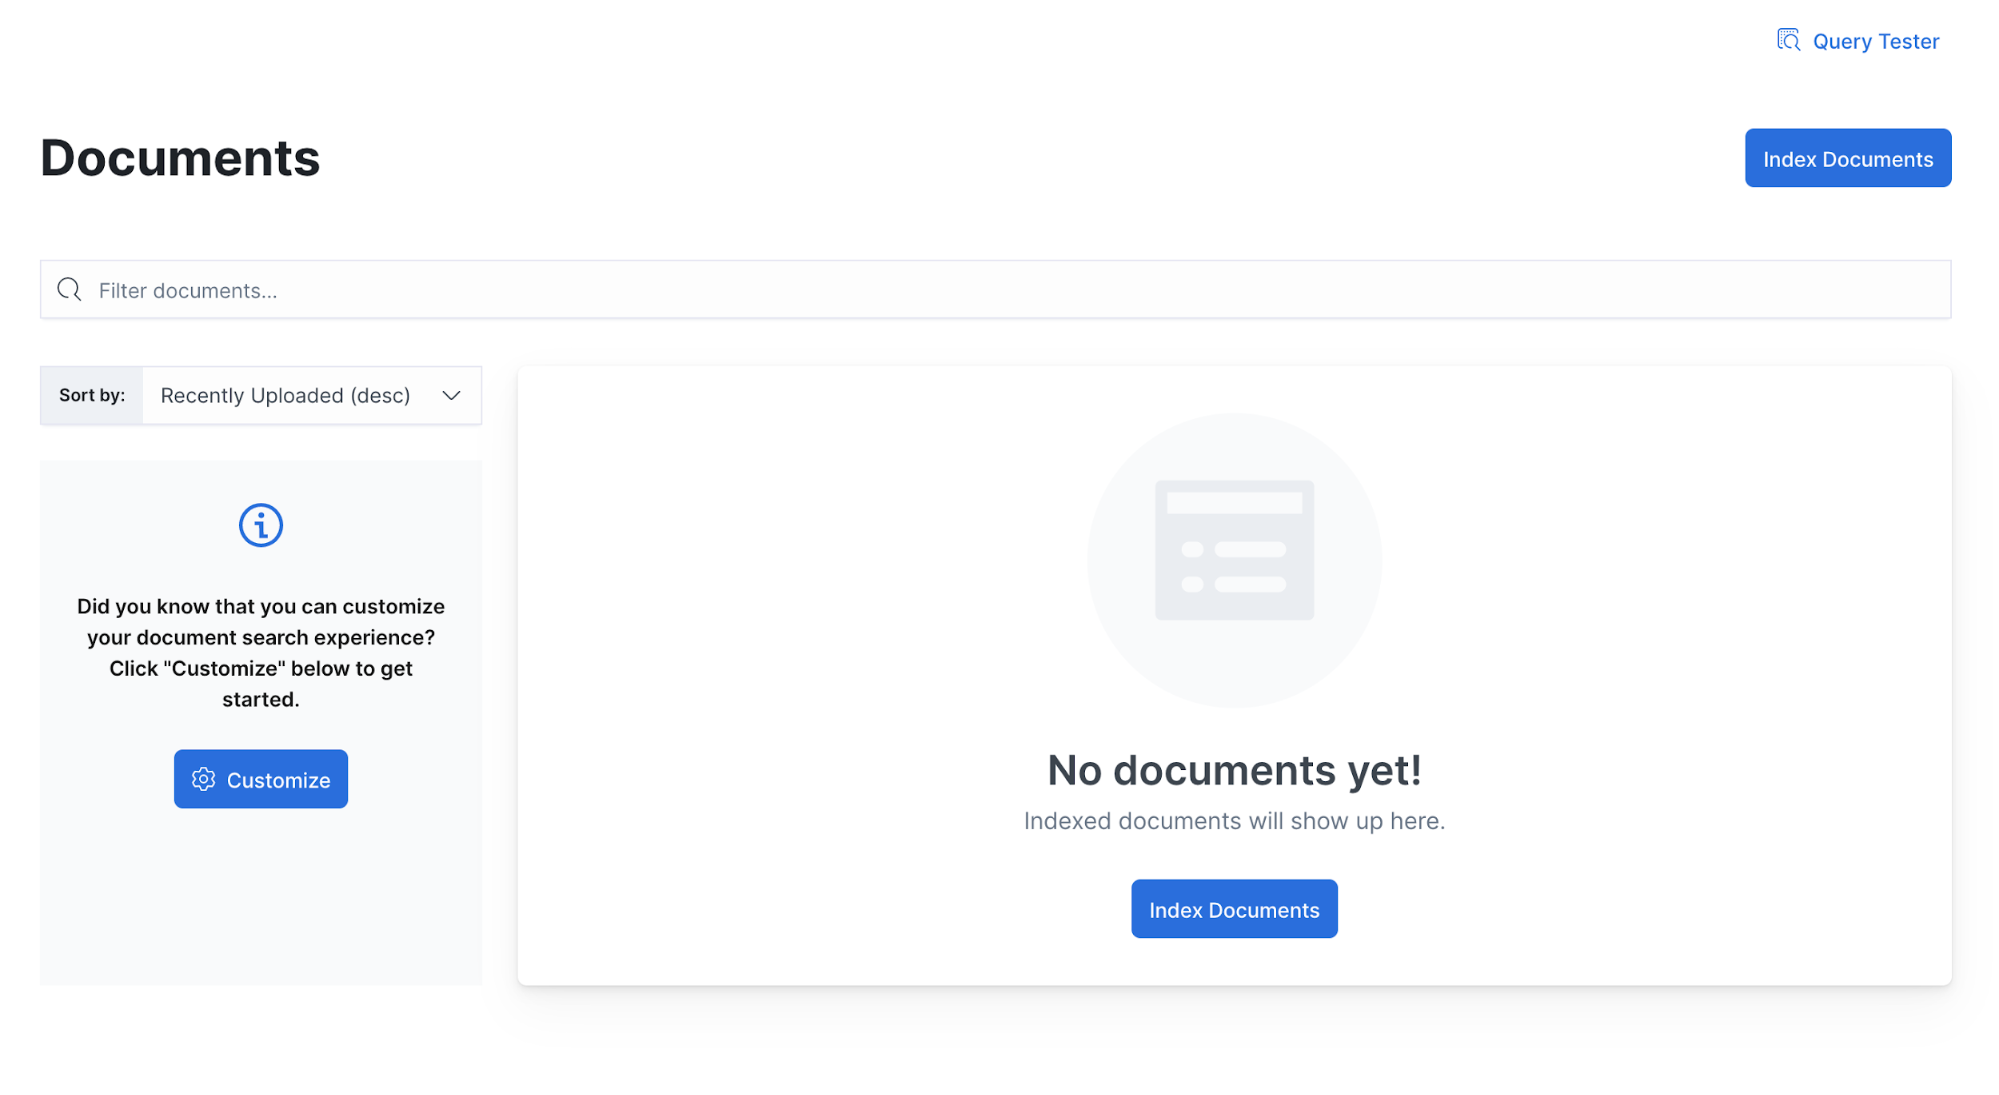 No documents appear in Documents view